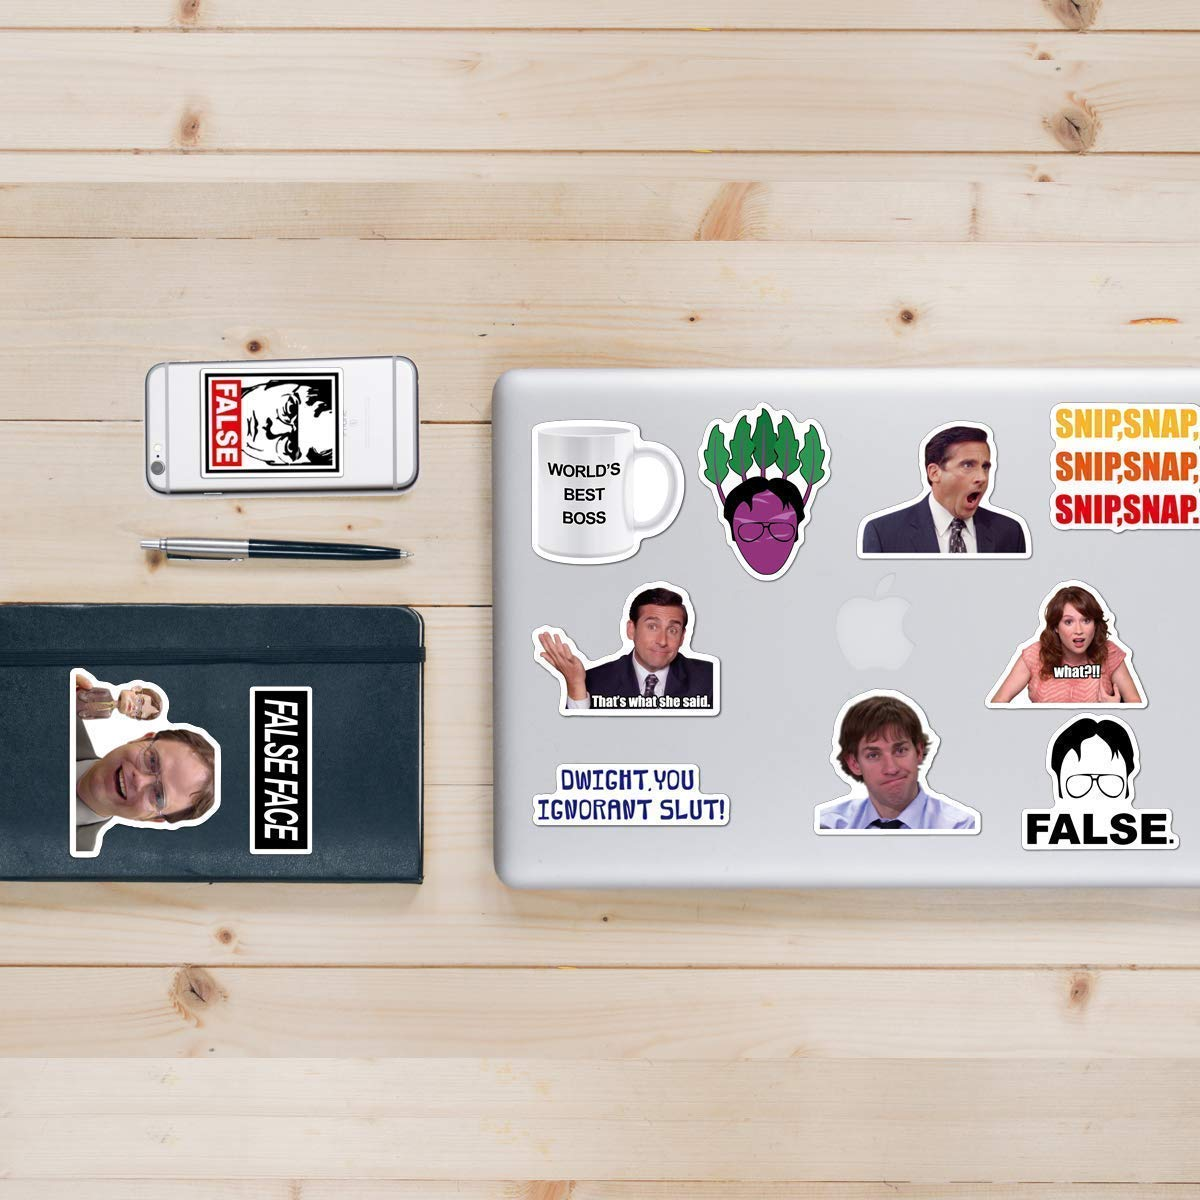 The Office Sticker Pack of 50 Stickers - Funny Waterproof Vinyl Stickers for Laptops, Hydro Flasks, Water Bottles, Computers, Phone